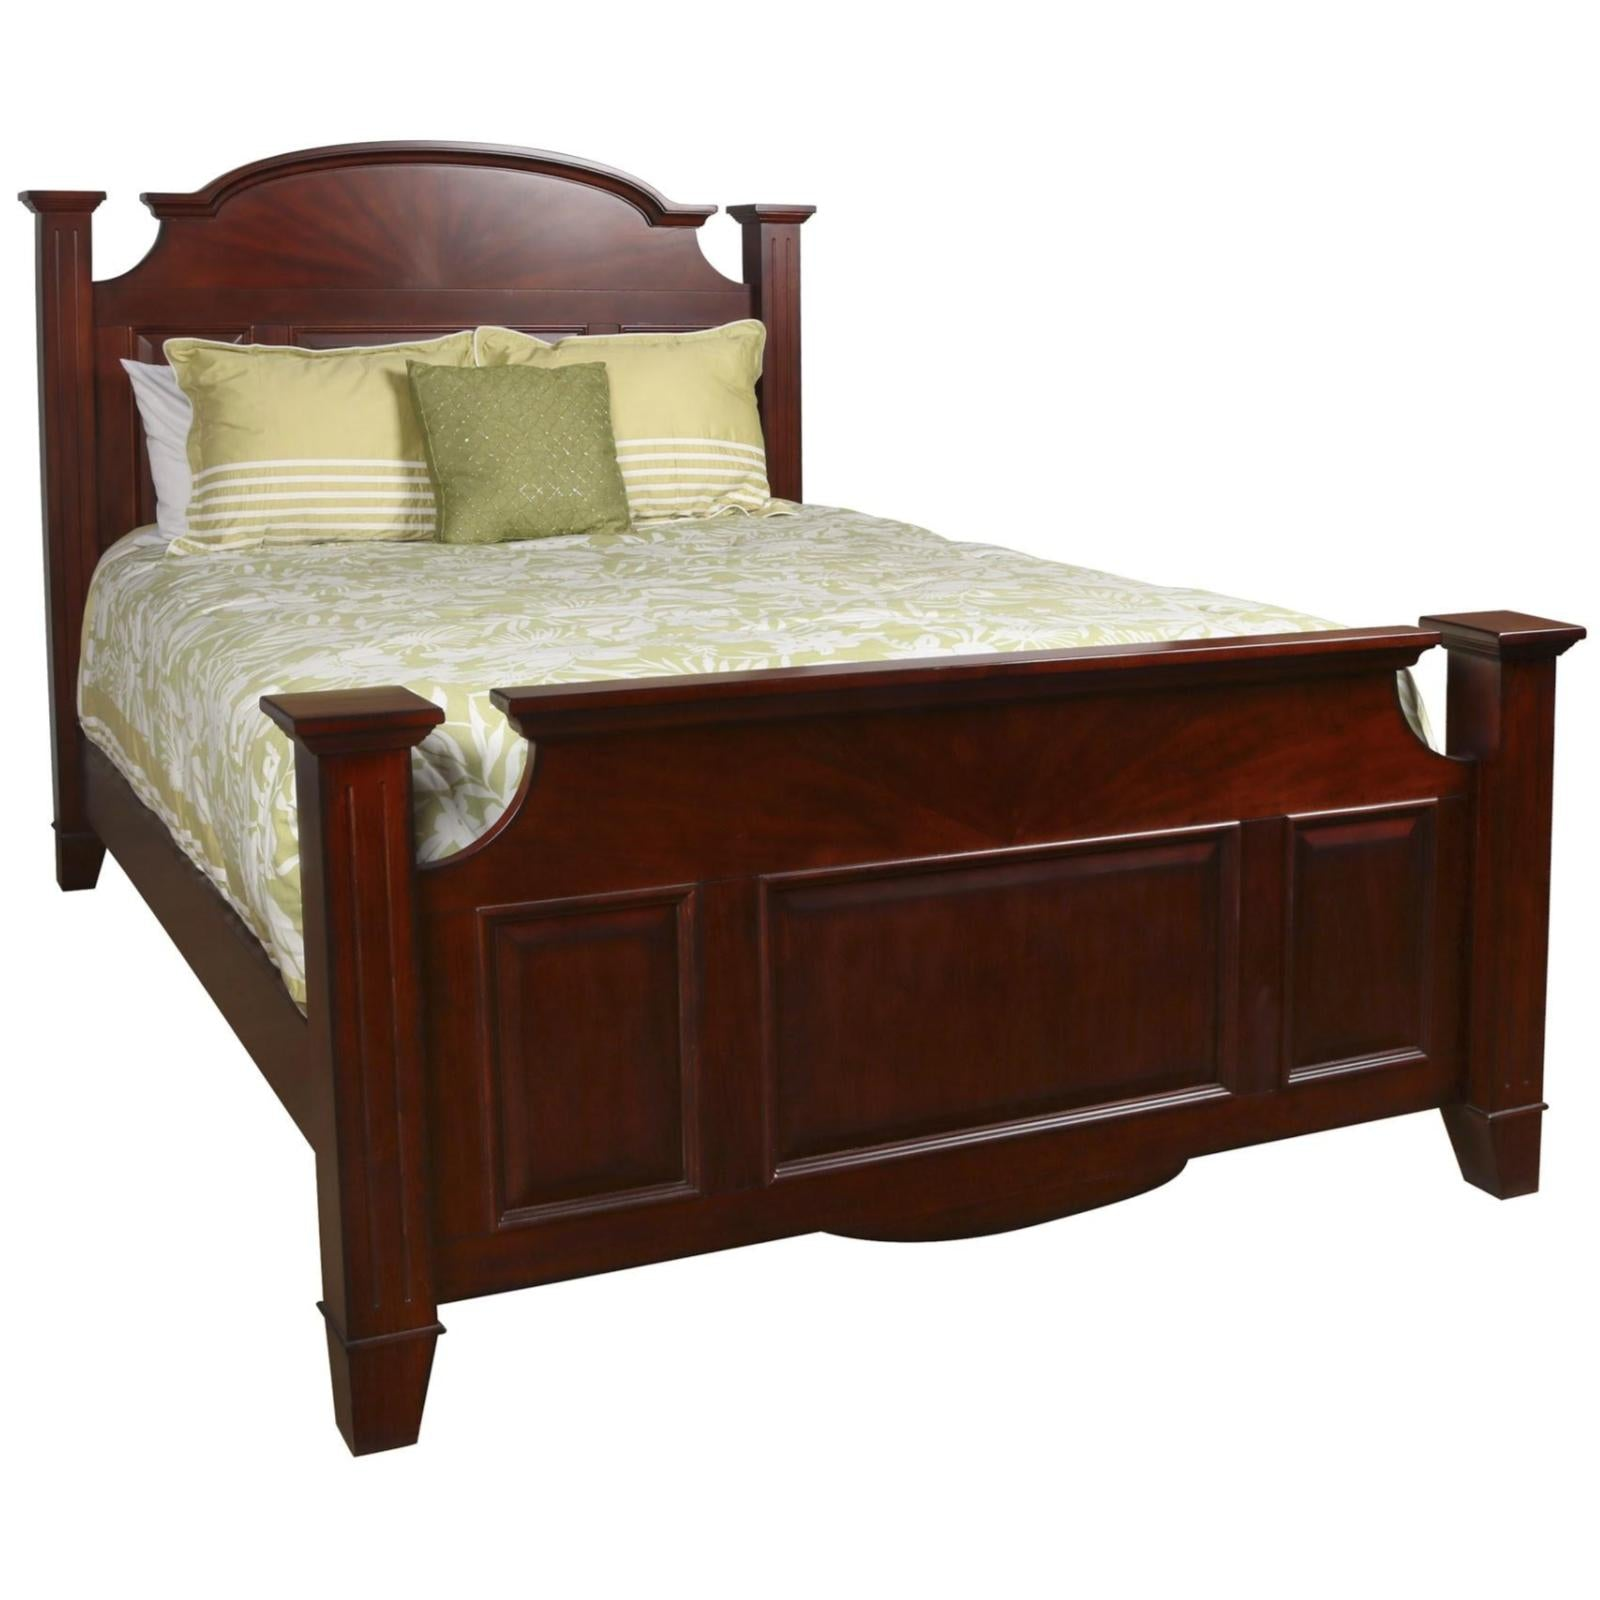 Charmant ... Drayton Hall Bedroom Set, Bedroom Set   Adams Furniture ...